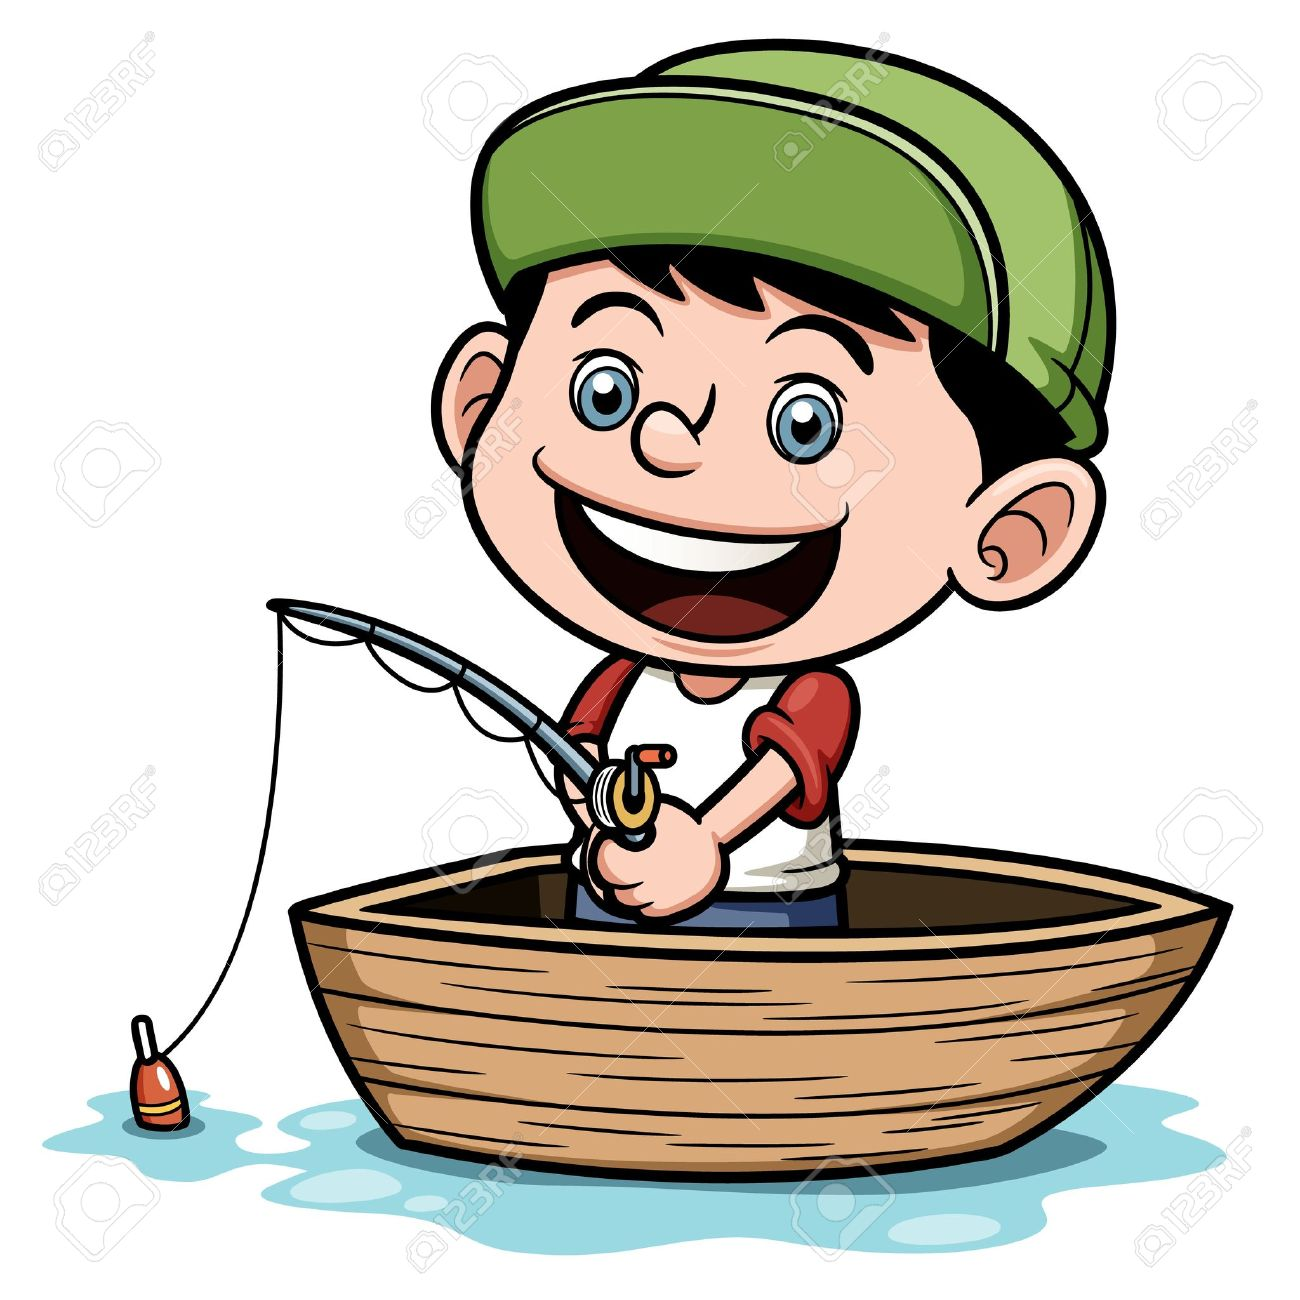 illustration of boy fishing in a boat royalty free cliparts vectors rh 123rf com fishing boat clipart free fishing boat clipart black and white